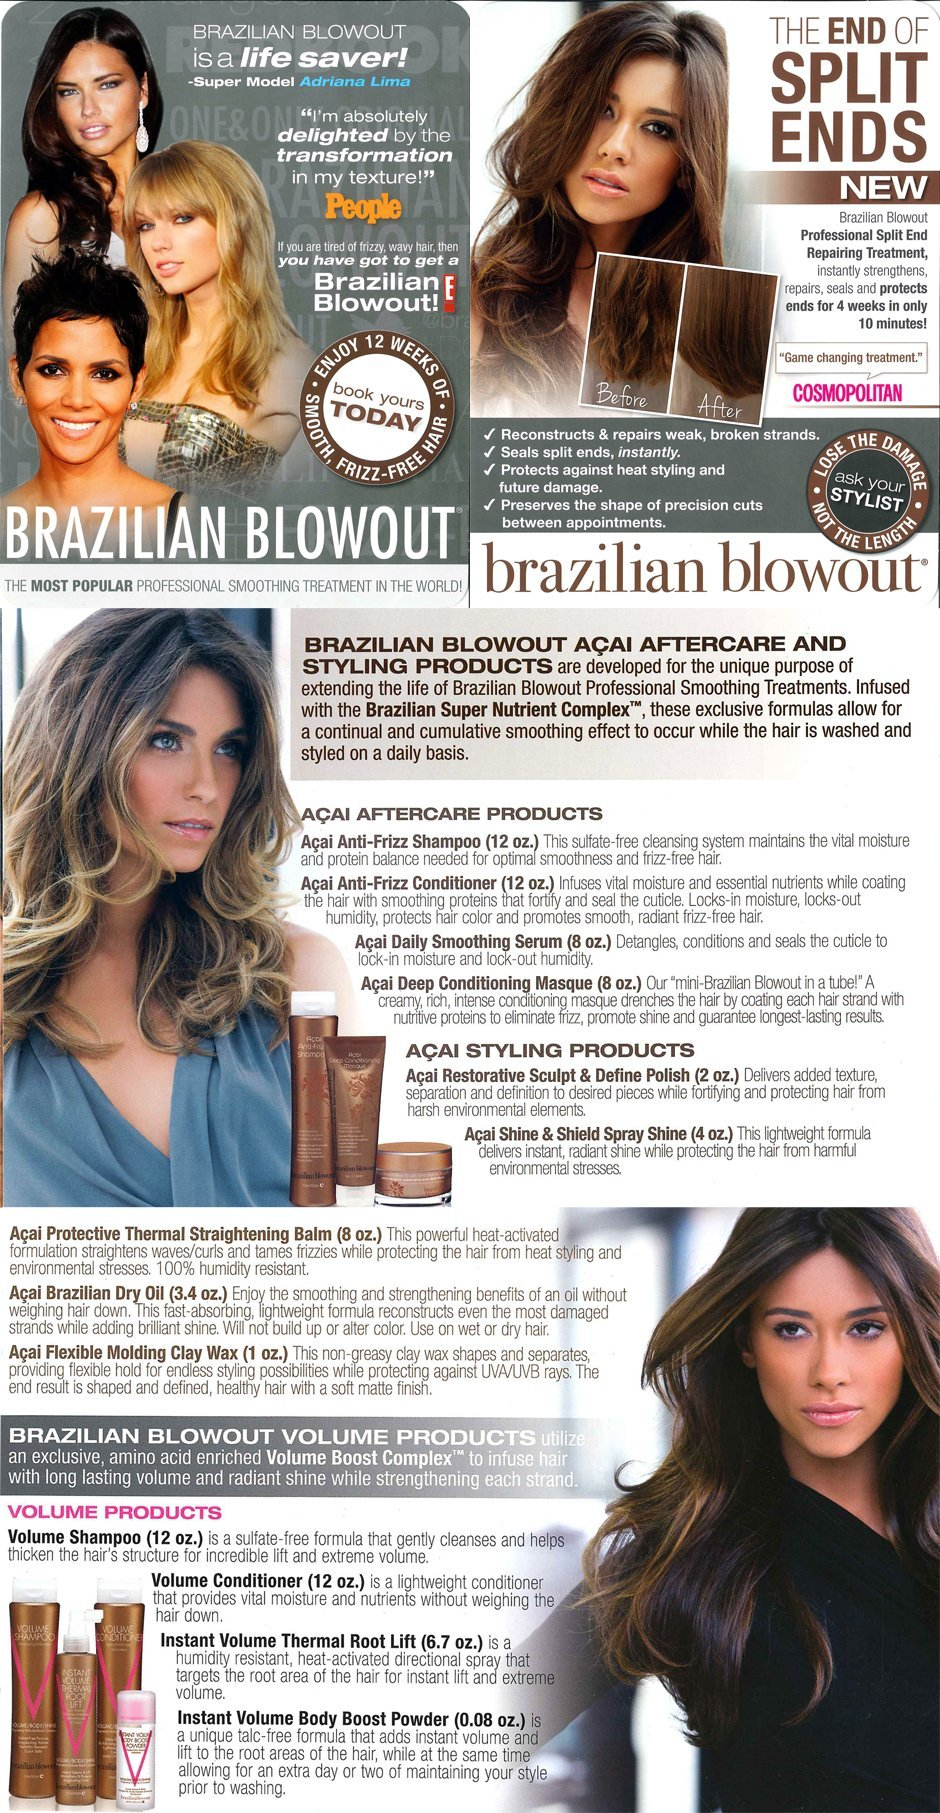 Brazillian Blowout | Wetumpka, AL | The Gab Salon & Spa | 334-567-5344